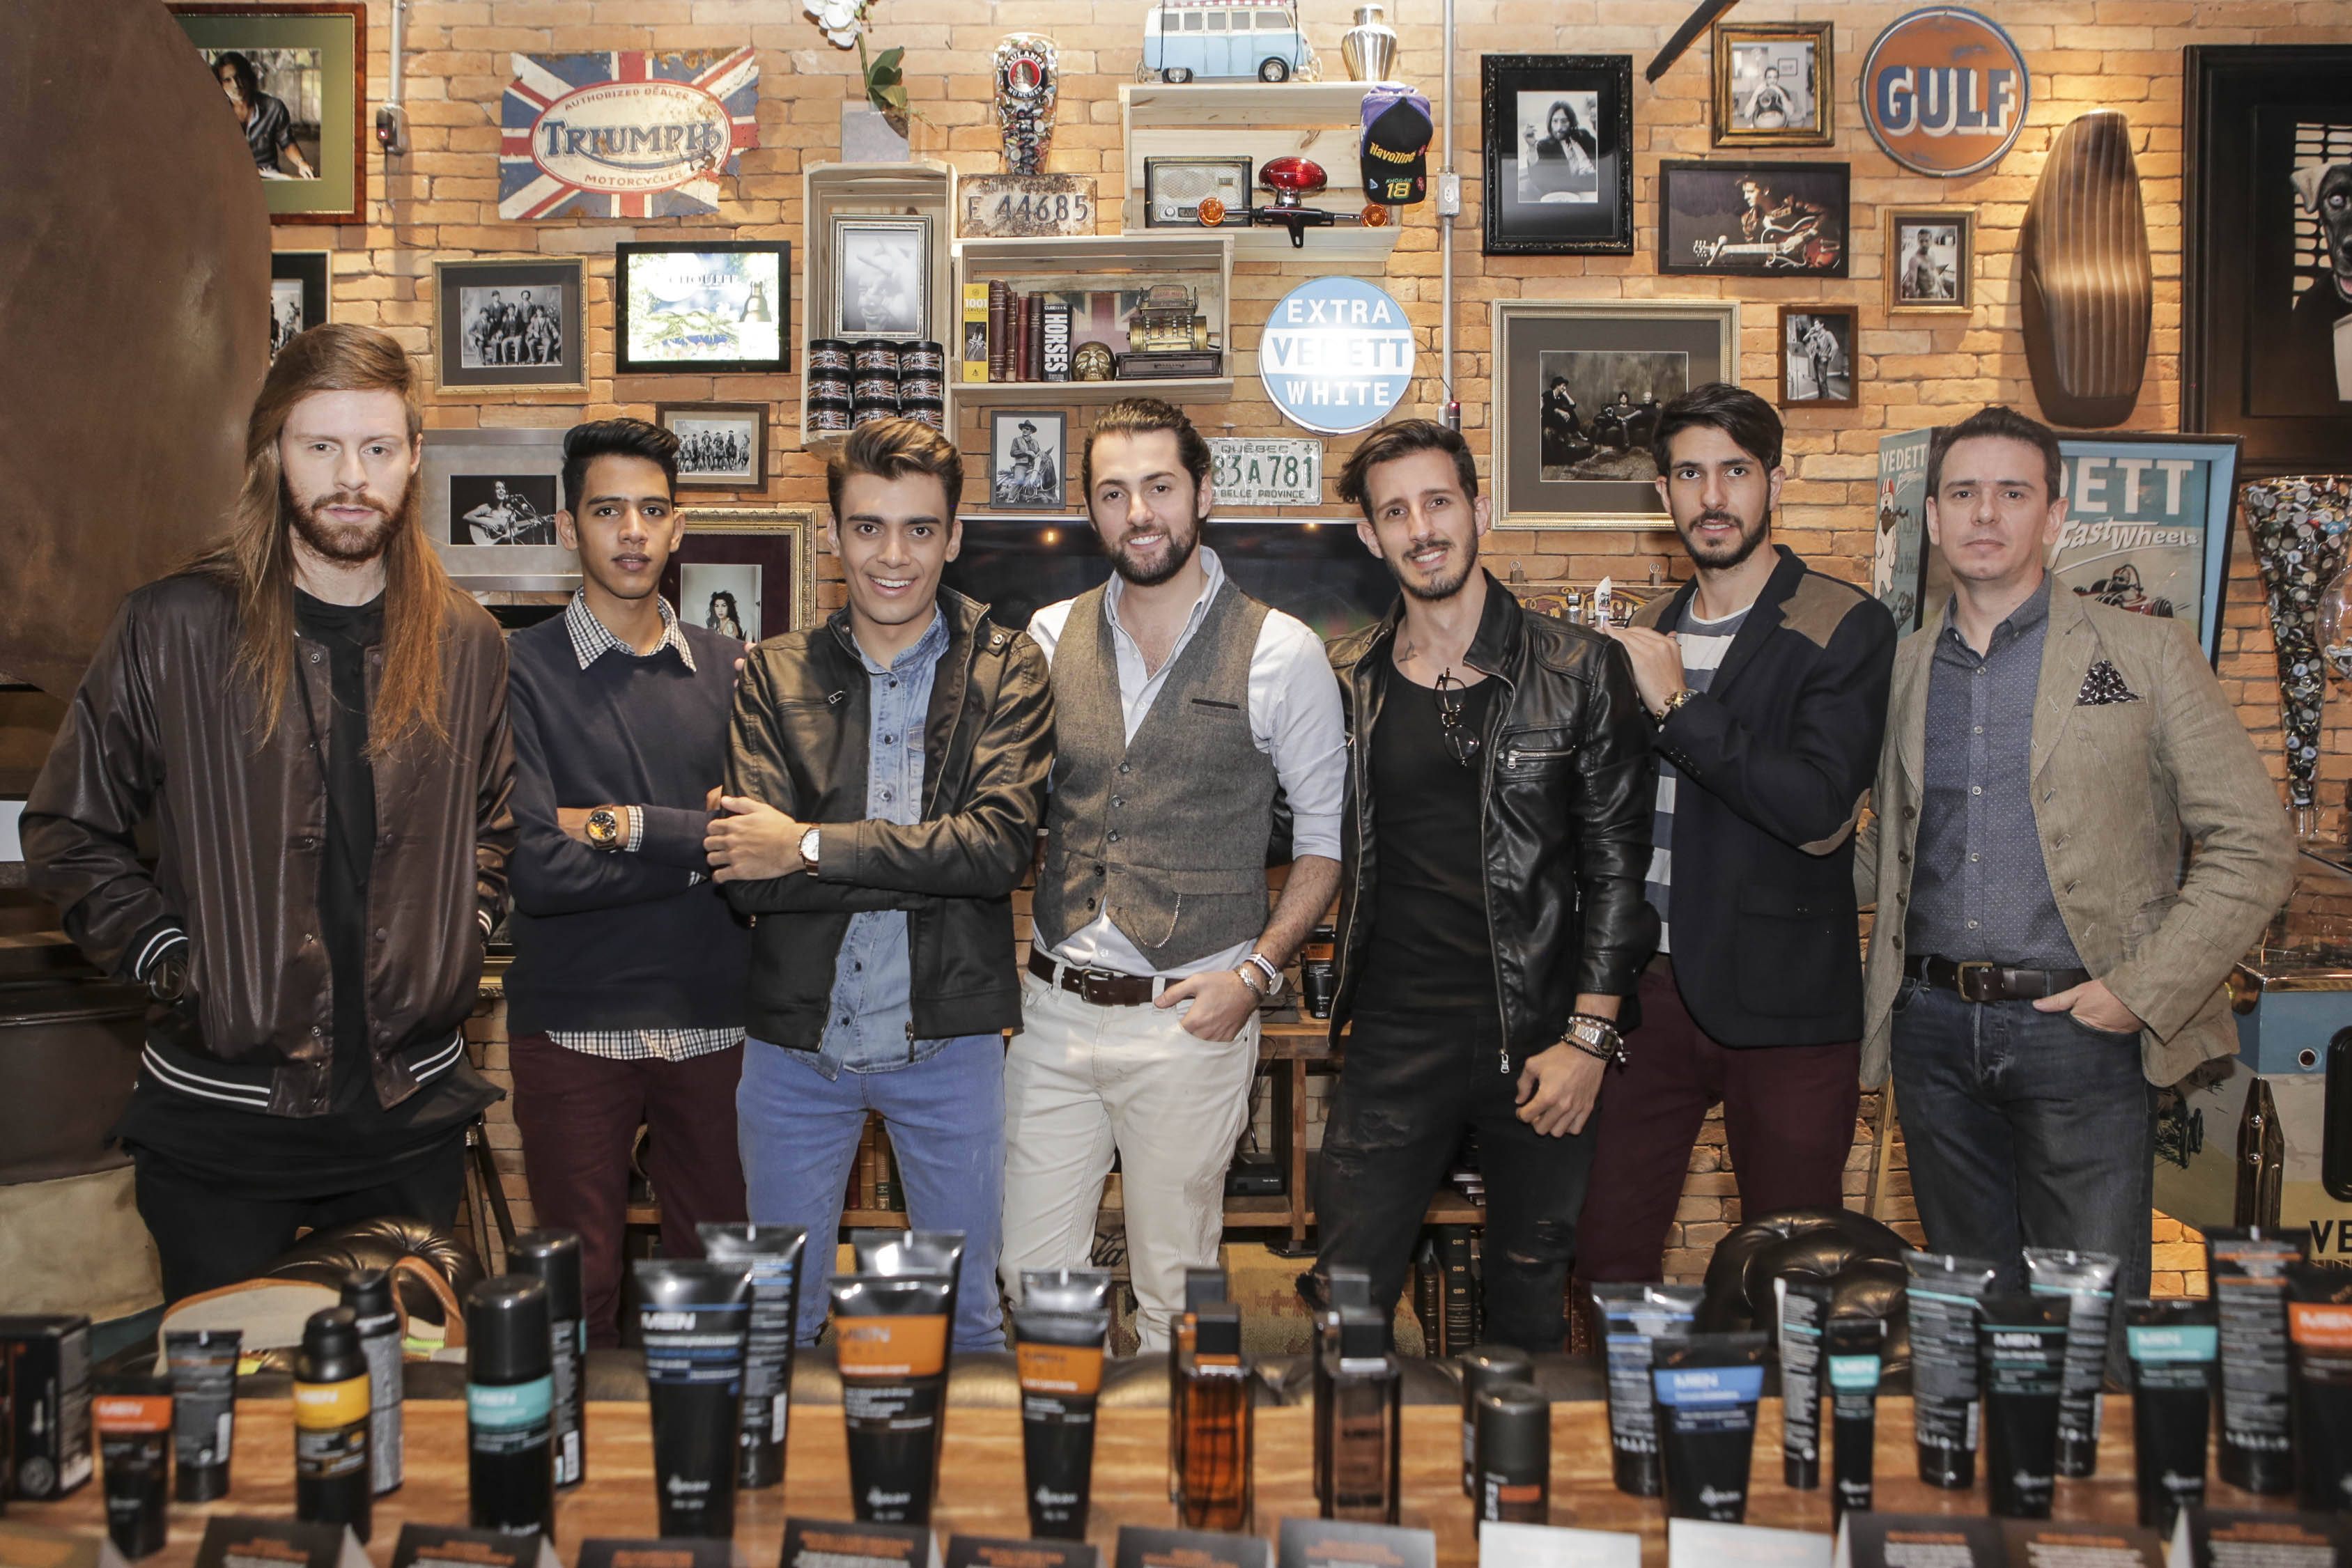 blogueiros de moda, blogueiros masculino, digital influencer, alex cursino, linha men only, grooming, vaidade masculina, beauty tips, o boticario, barbearia corleone, coloral, moda sem censura (2)